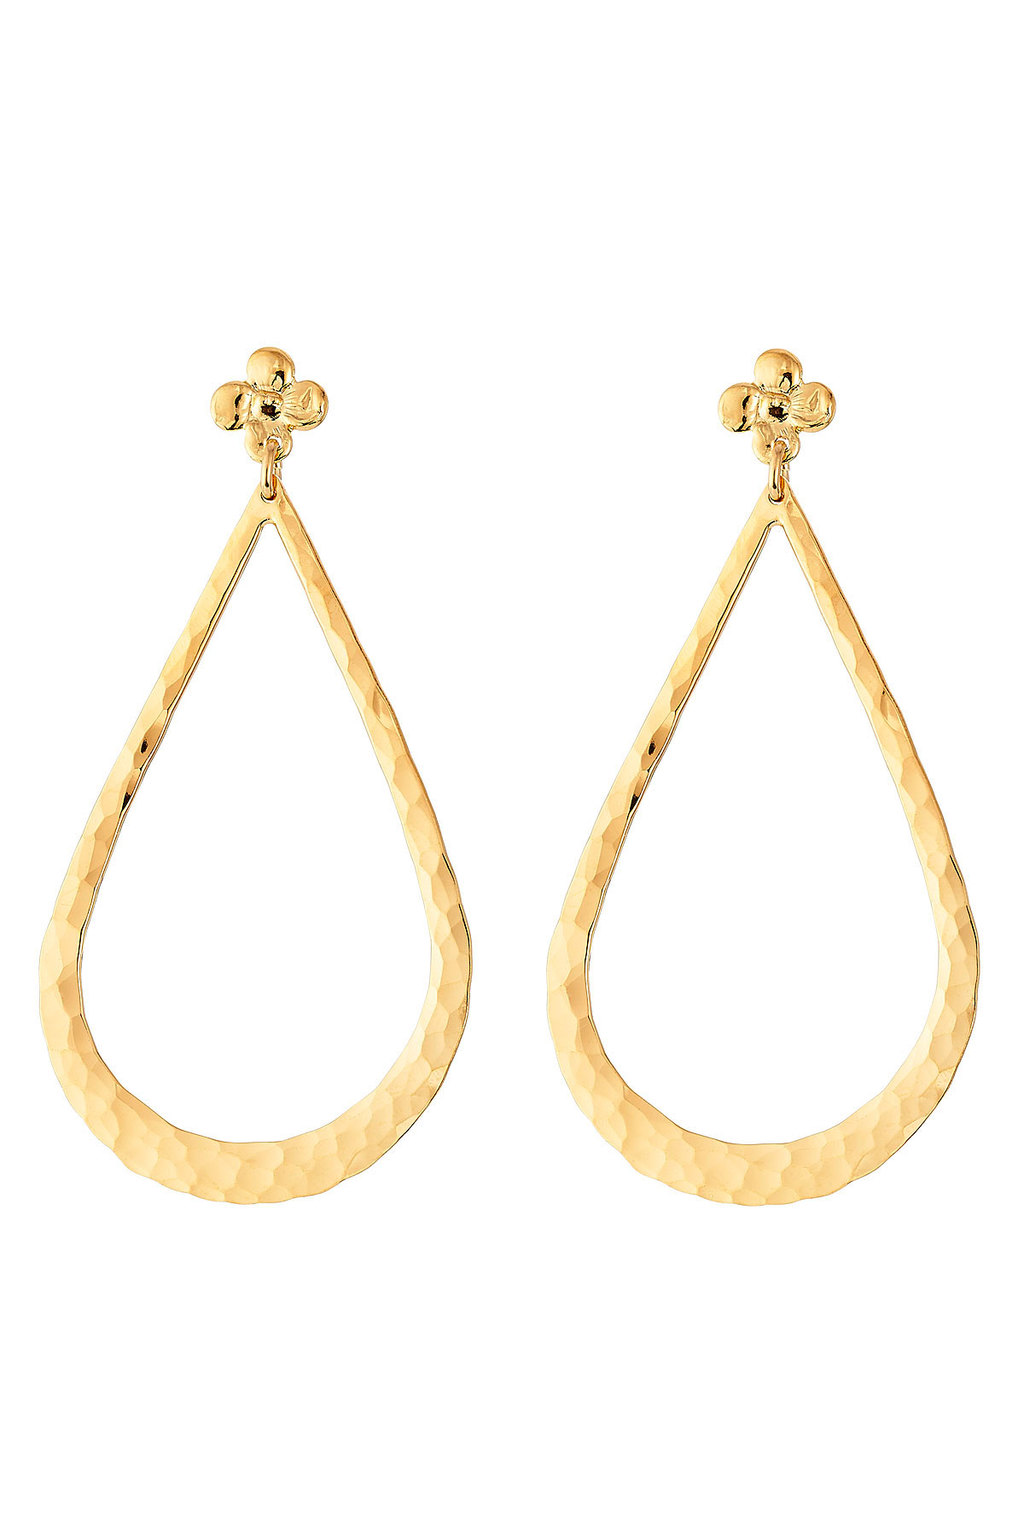 Bibi Gold Plated Earrings - predominant colour: gold; occasions: evening; style: drop; length: long; size: large/oversized; material: chain/metal; fastening: pierced; finish: metallic; season: s/s 2016